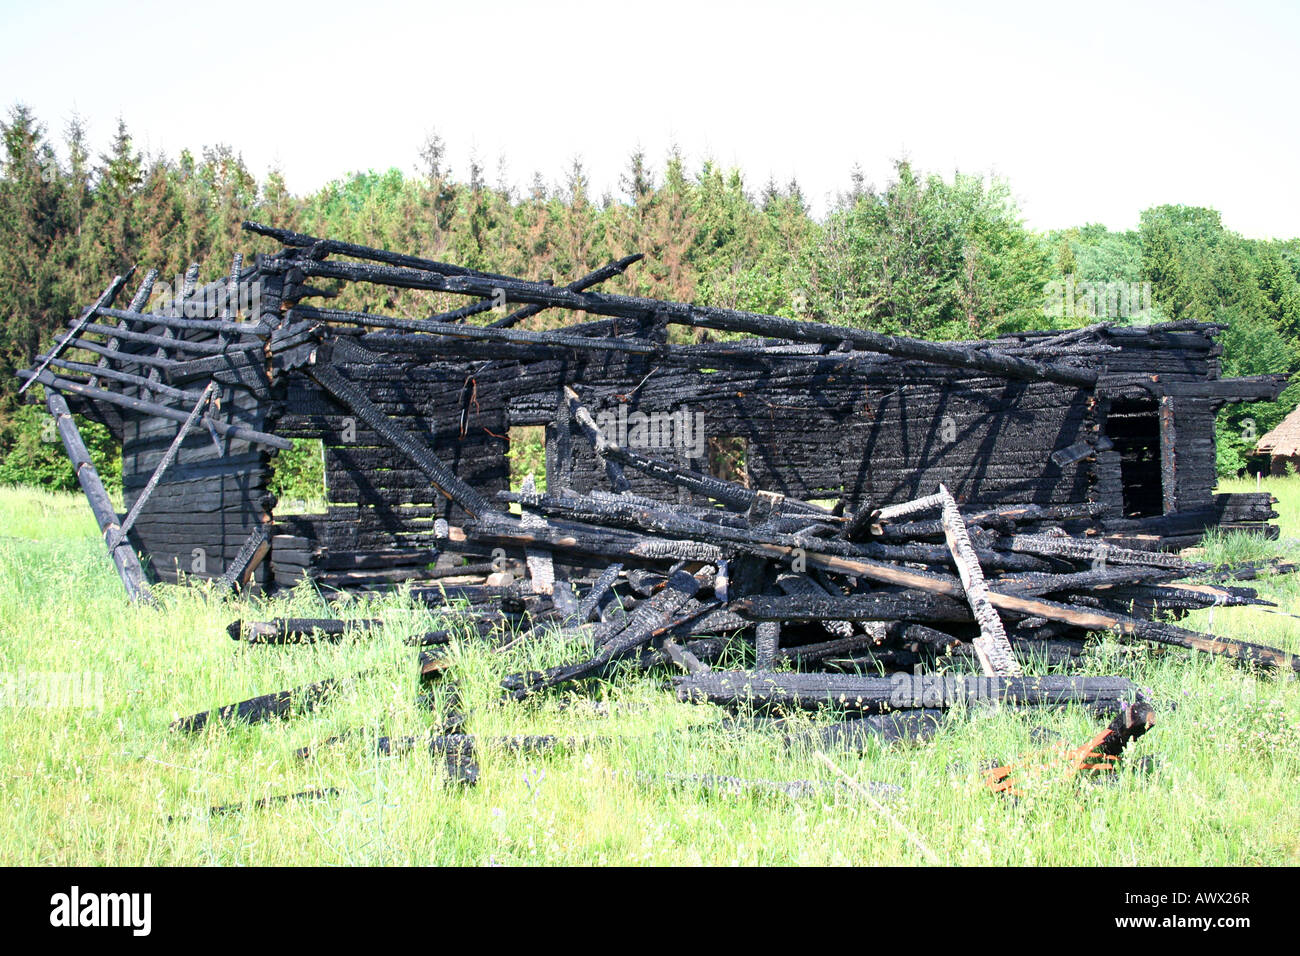 The conflagration house after fire - Stock Image